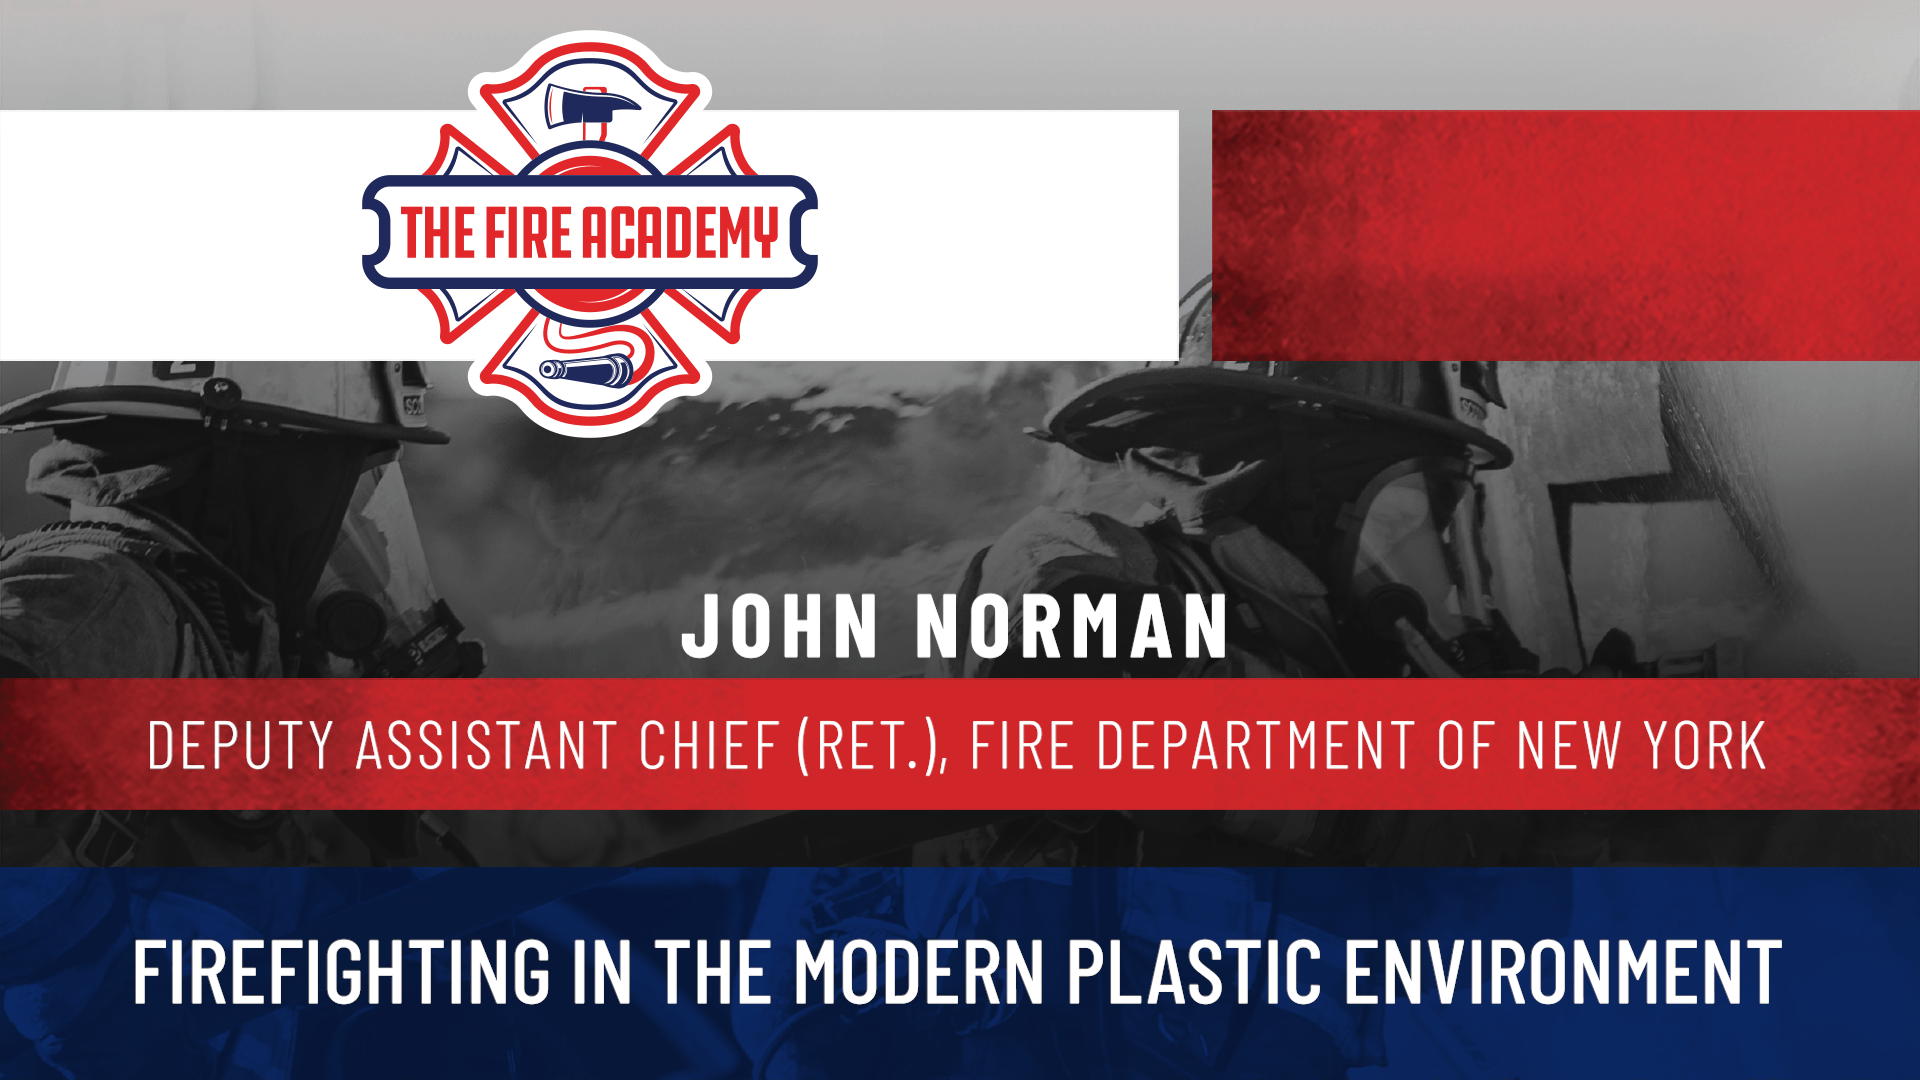 Firefighting in the Modern Plastic Environment